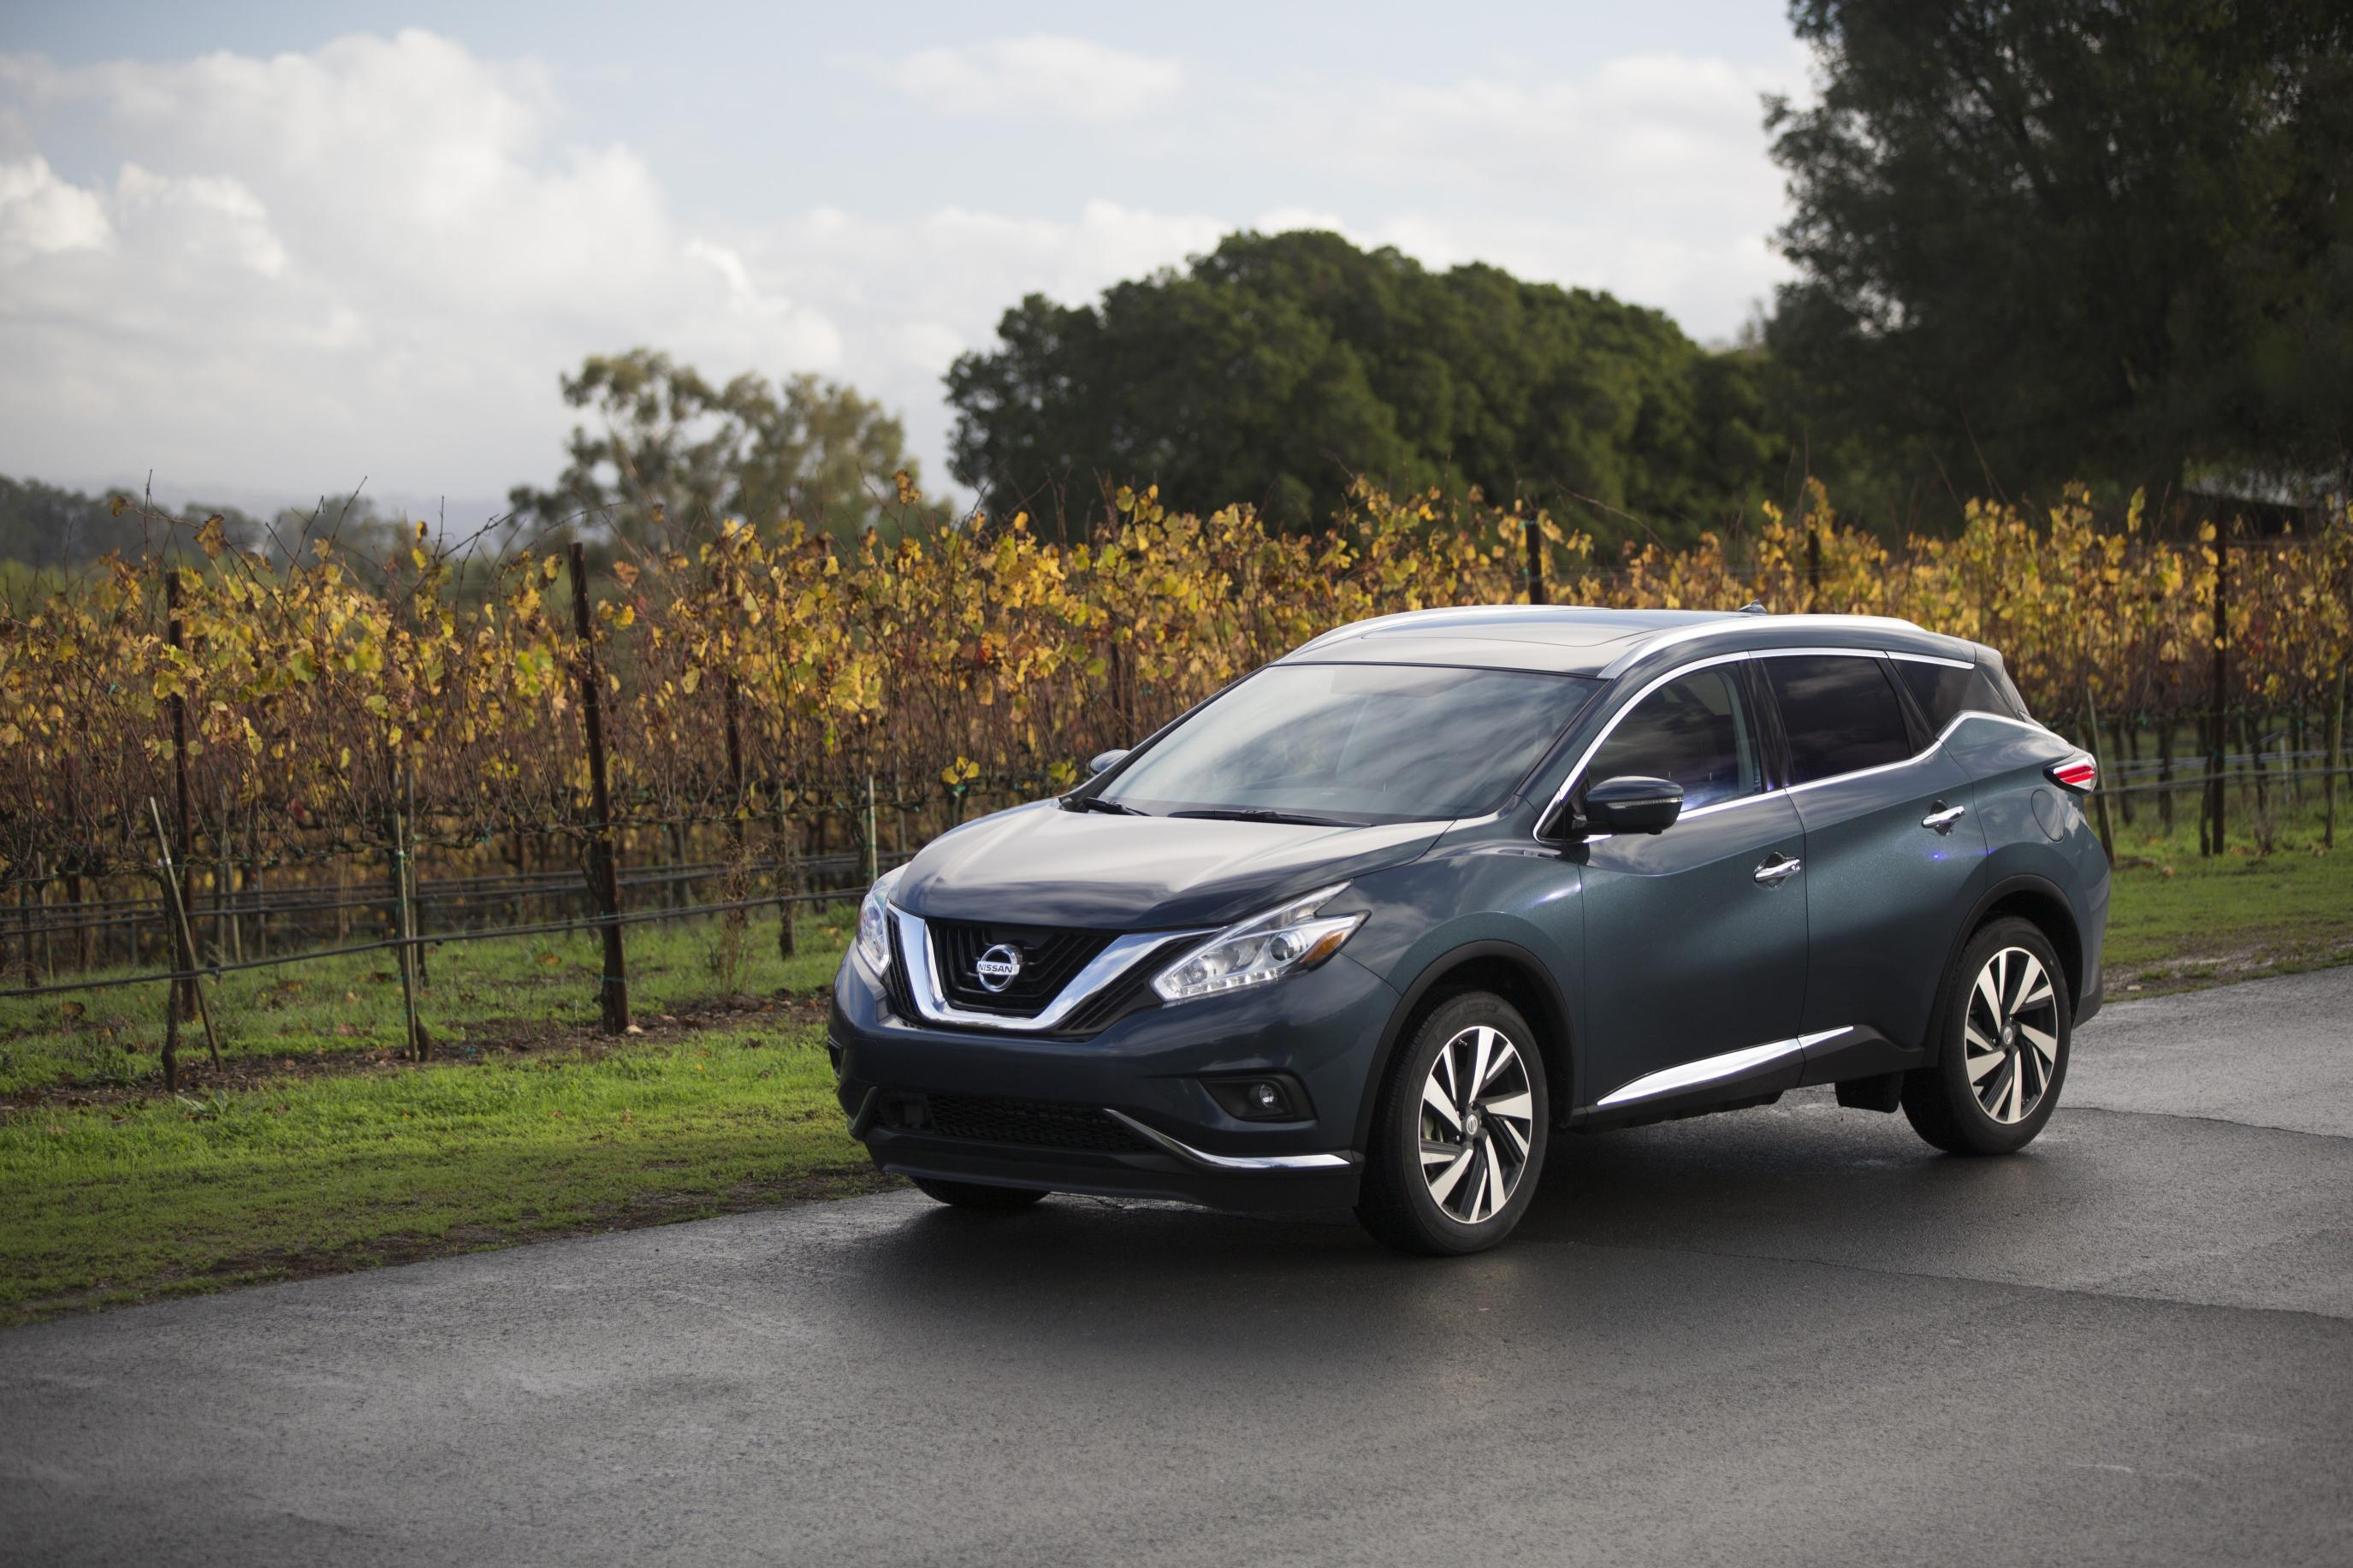 A Guide to IIHSs Safest Cars of 2015 for the US Market